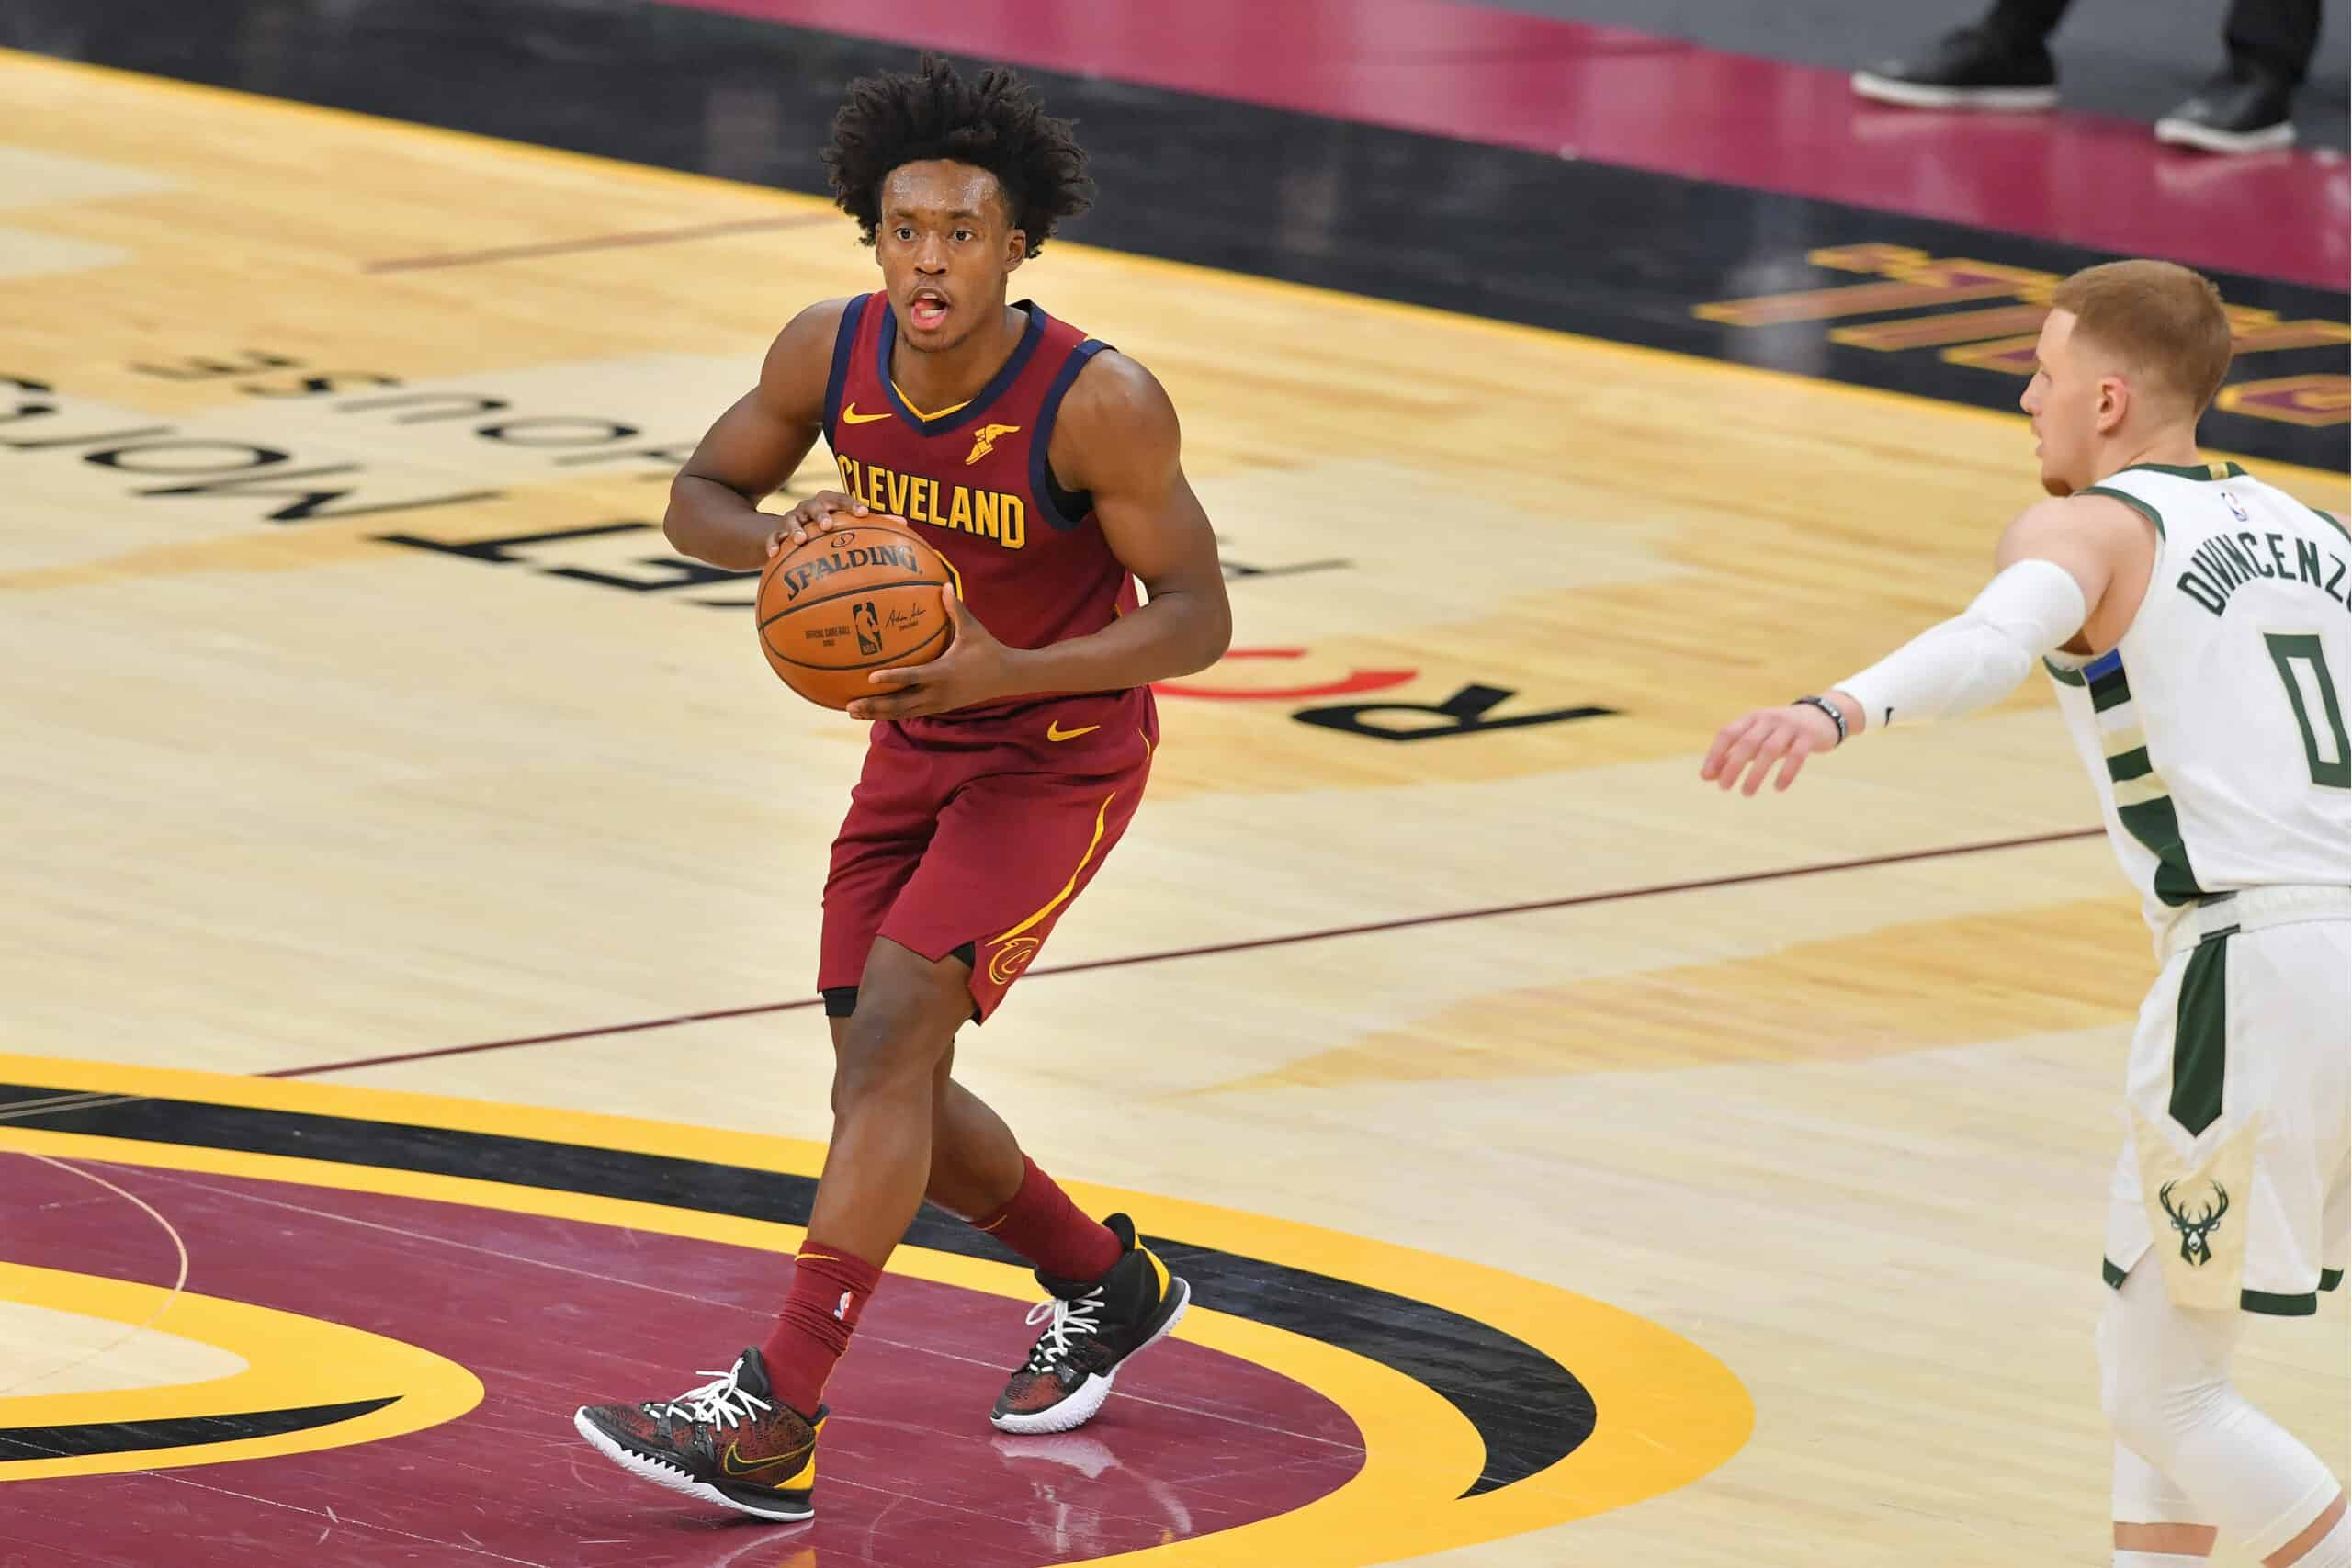 Collin Sexton #2 of the Cleveland Cavaliers passes during the fourth quarter against the Milwaukee Bucks at Rocket Mortgage Fieldhouse on February 05, 2021 in Cleveland, Ohio. The Bucks defeated the Cavaliers 123-105.